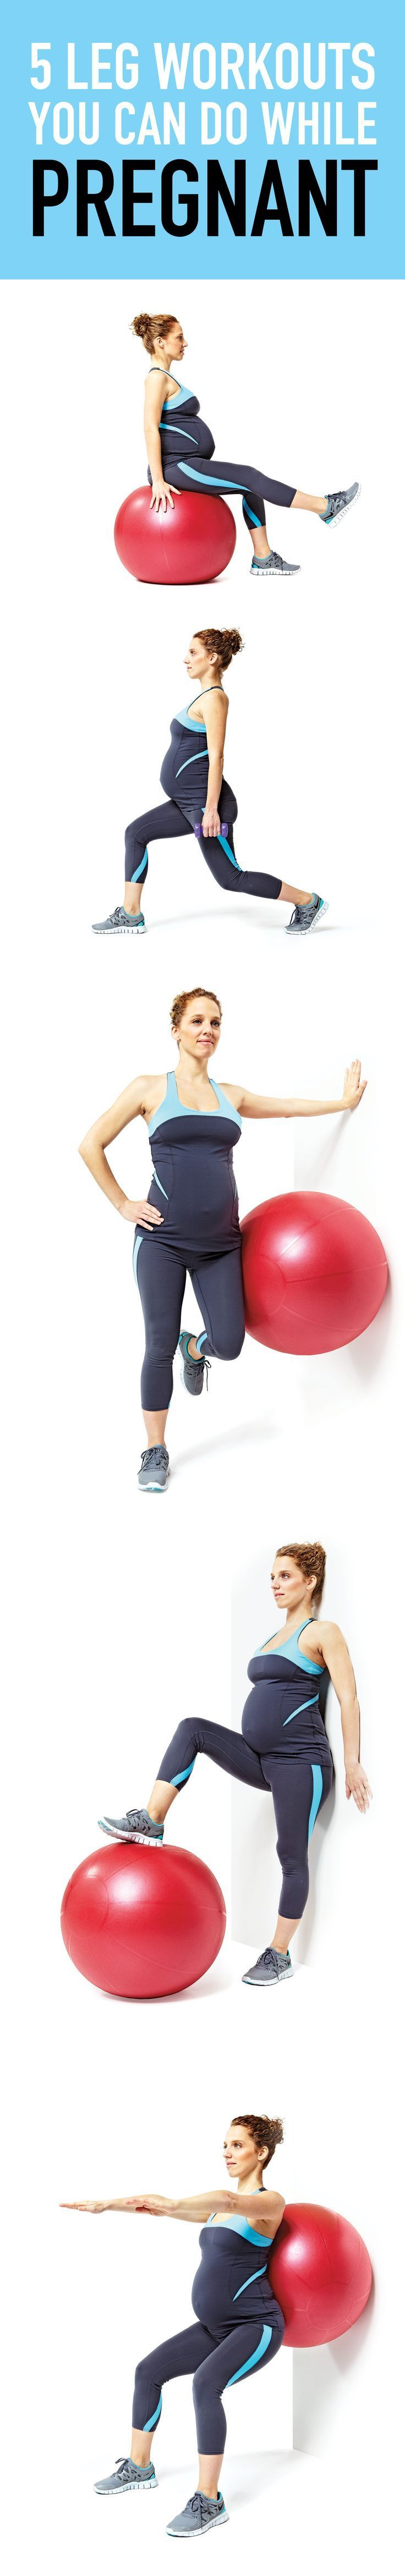 This specially designed pregnancy workout will target your legs! #pregnancy